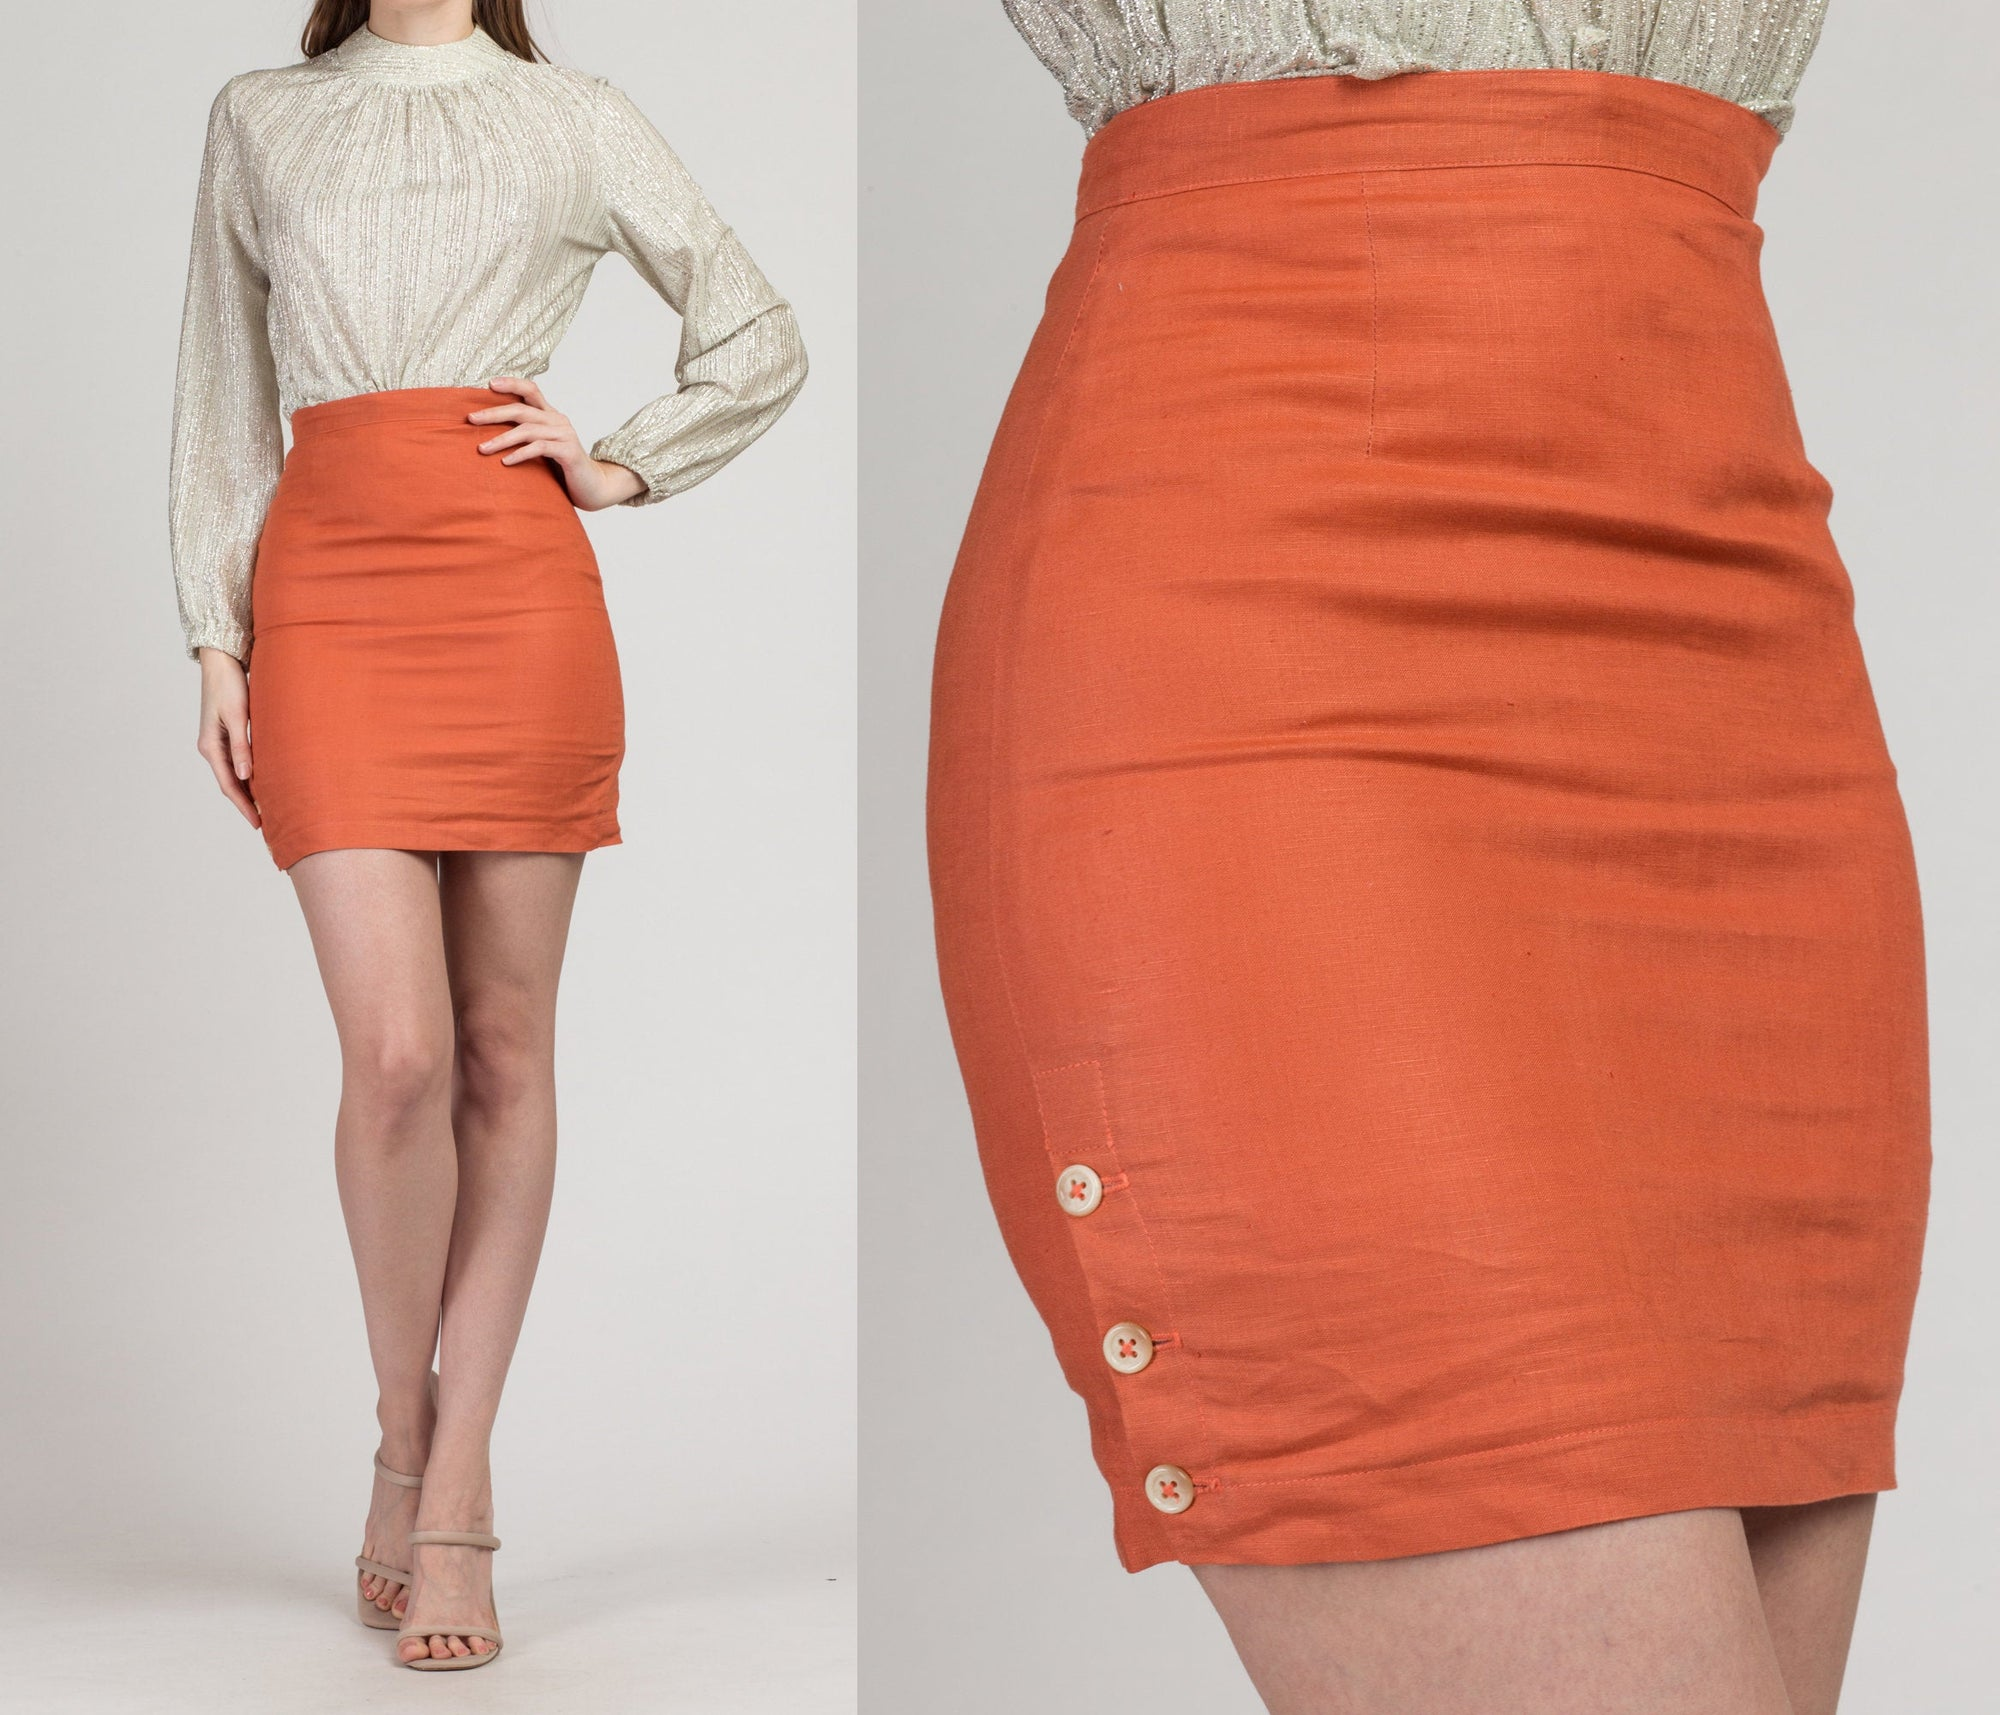 Vintage Georges Marciano Linen Mini Pencil Skirt - Extra Small, 24"